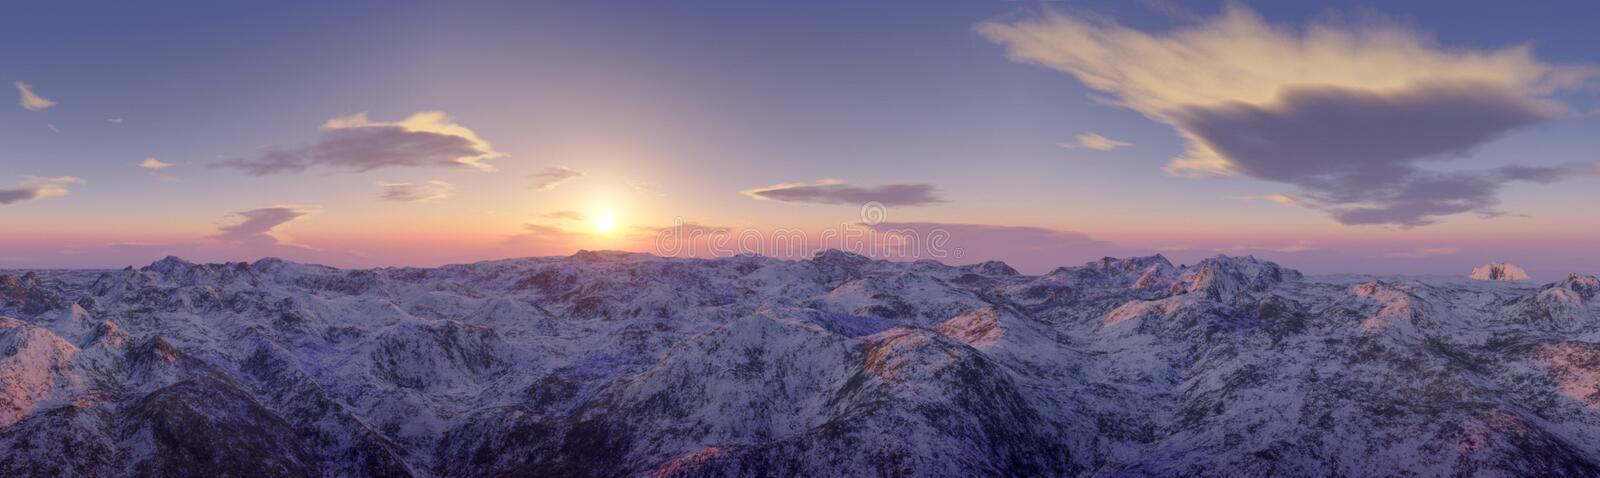 Panoramic view of mountains landscape stock photos